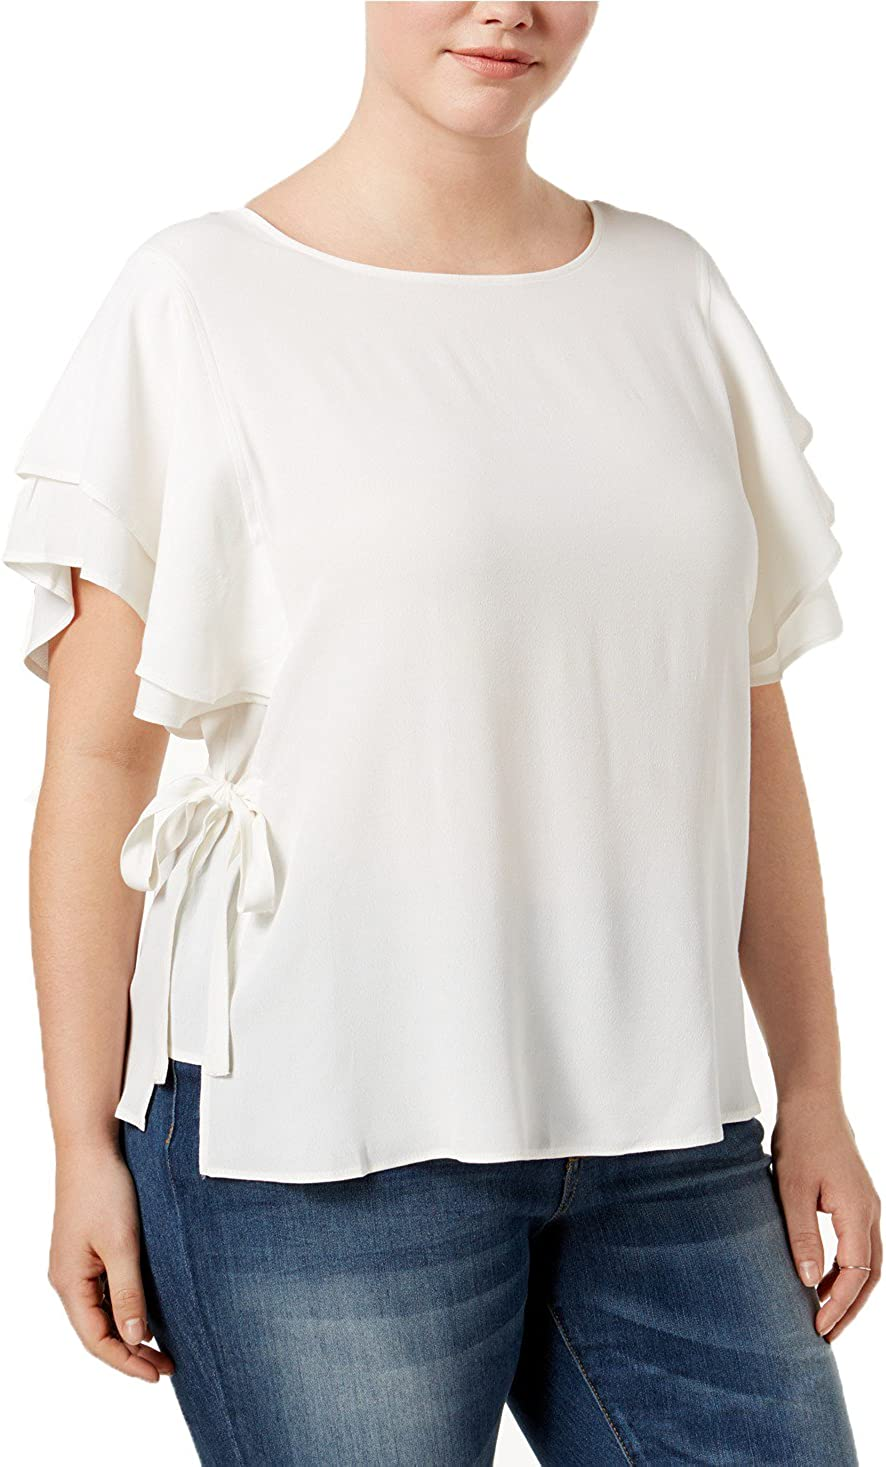 Witspace Women Printed Shirt Short Sleeve Blouses Tops Causal T Shirt